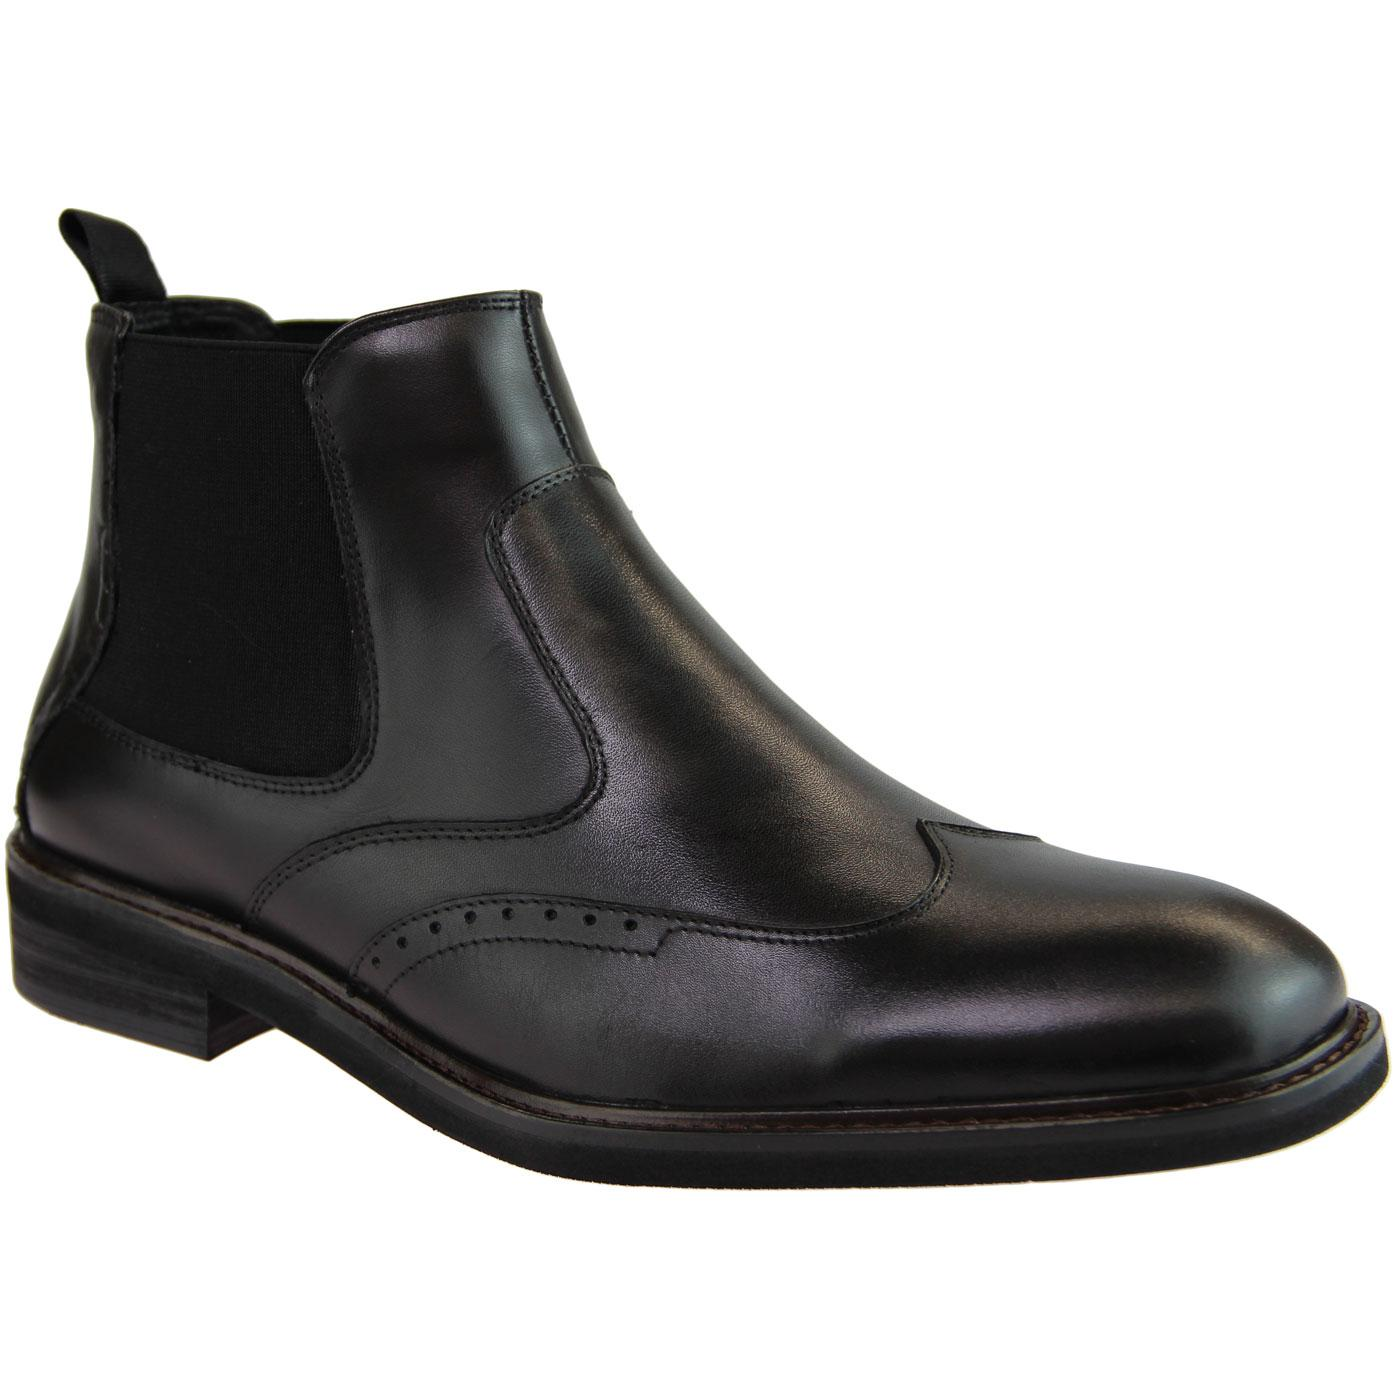 Crowley PAOLO VANDINI Mod Brogue Chelsea Boots (B)